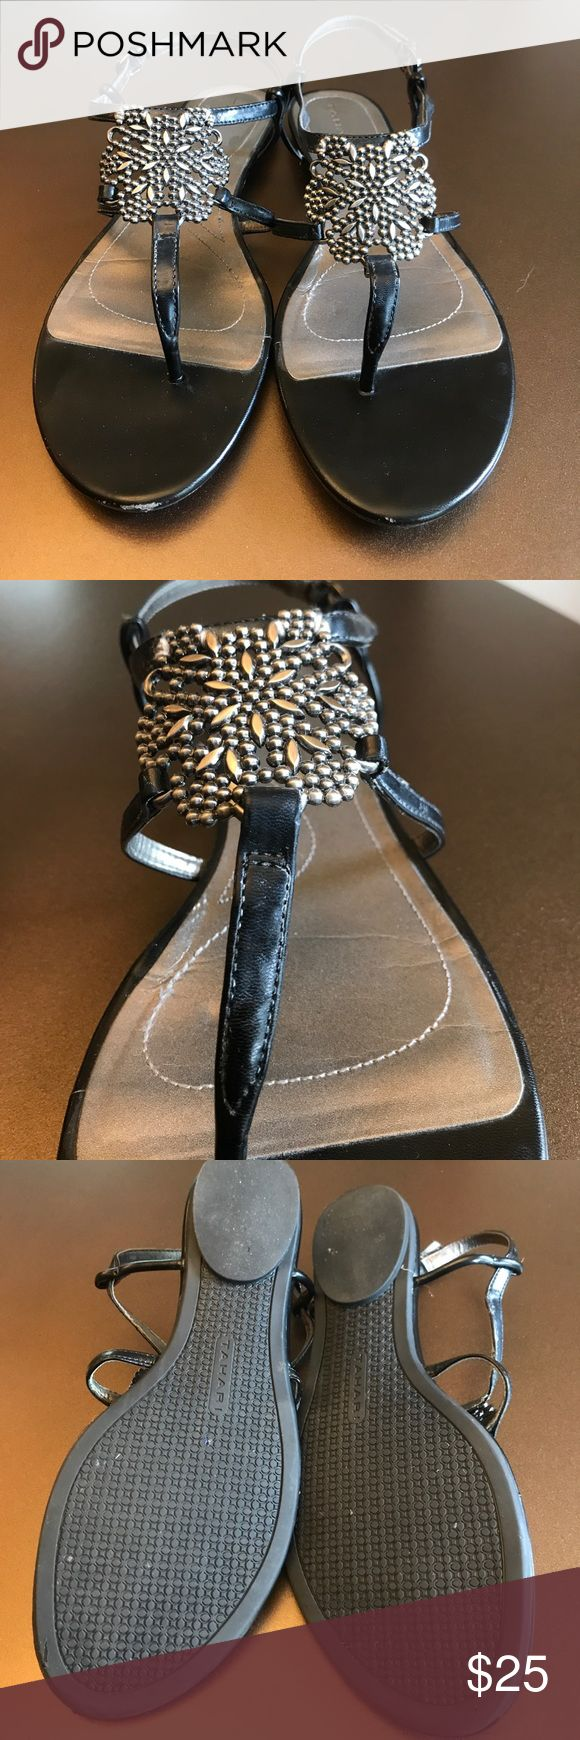 Tahari black flat sandal, adjustable heel strap Tahari black flat sandal with adjustable heel strap. Heel measure 1/4 inch. Cute silver metal design in top. Barely worn, excellent condition, smoke free home. Tahari Shoes Sandals